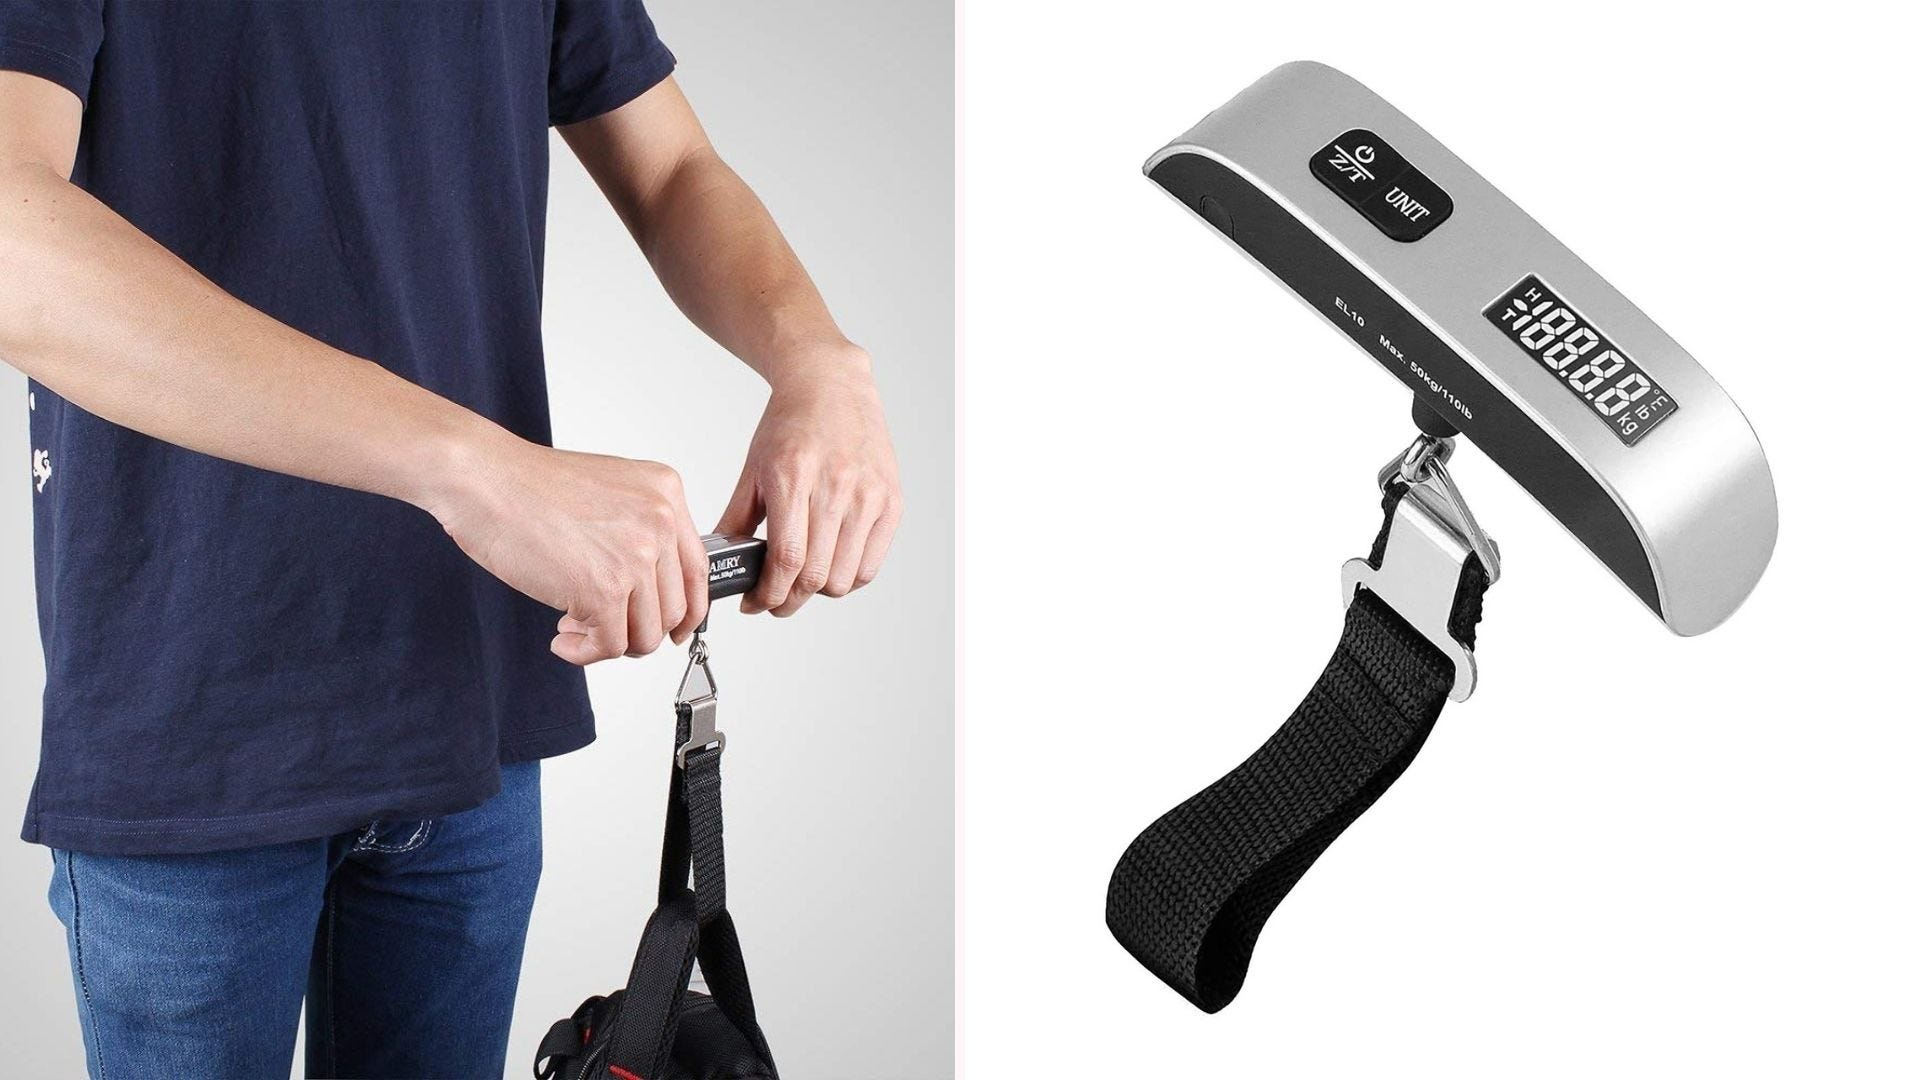 On the left a man using a Camry luggage scale, on the right only a luggage scale.